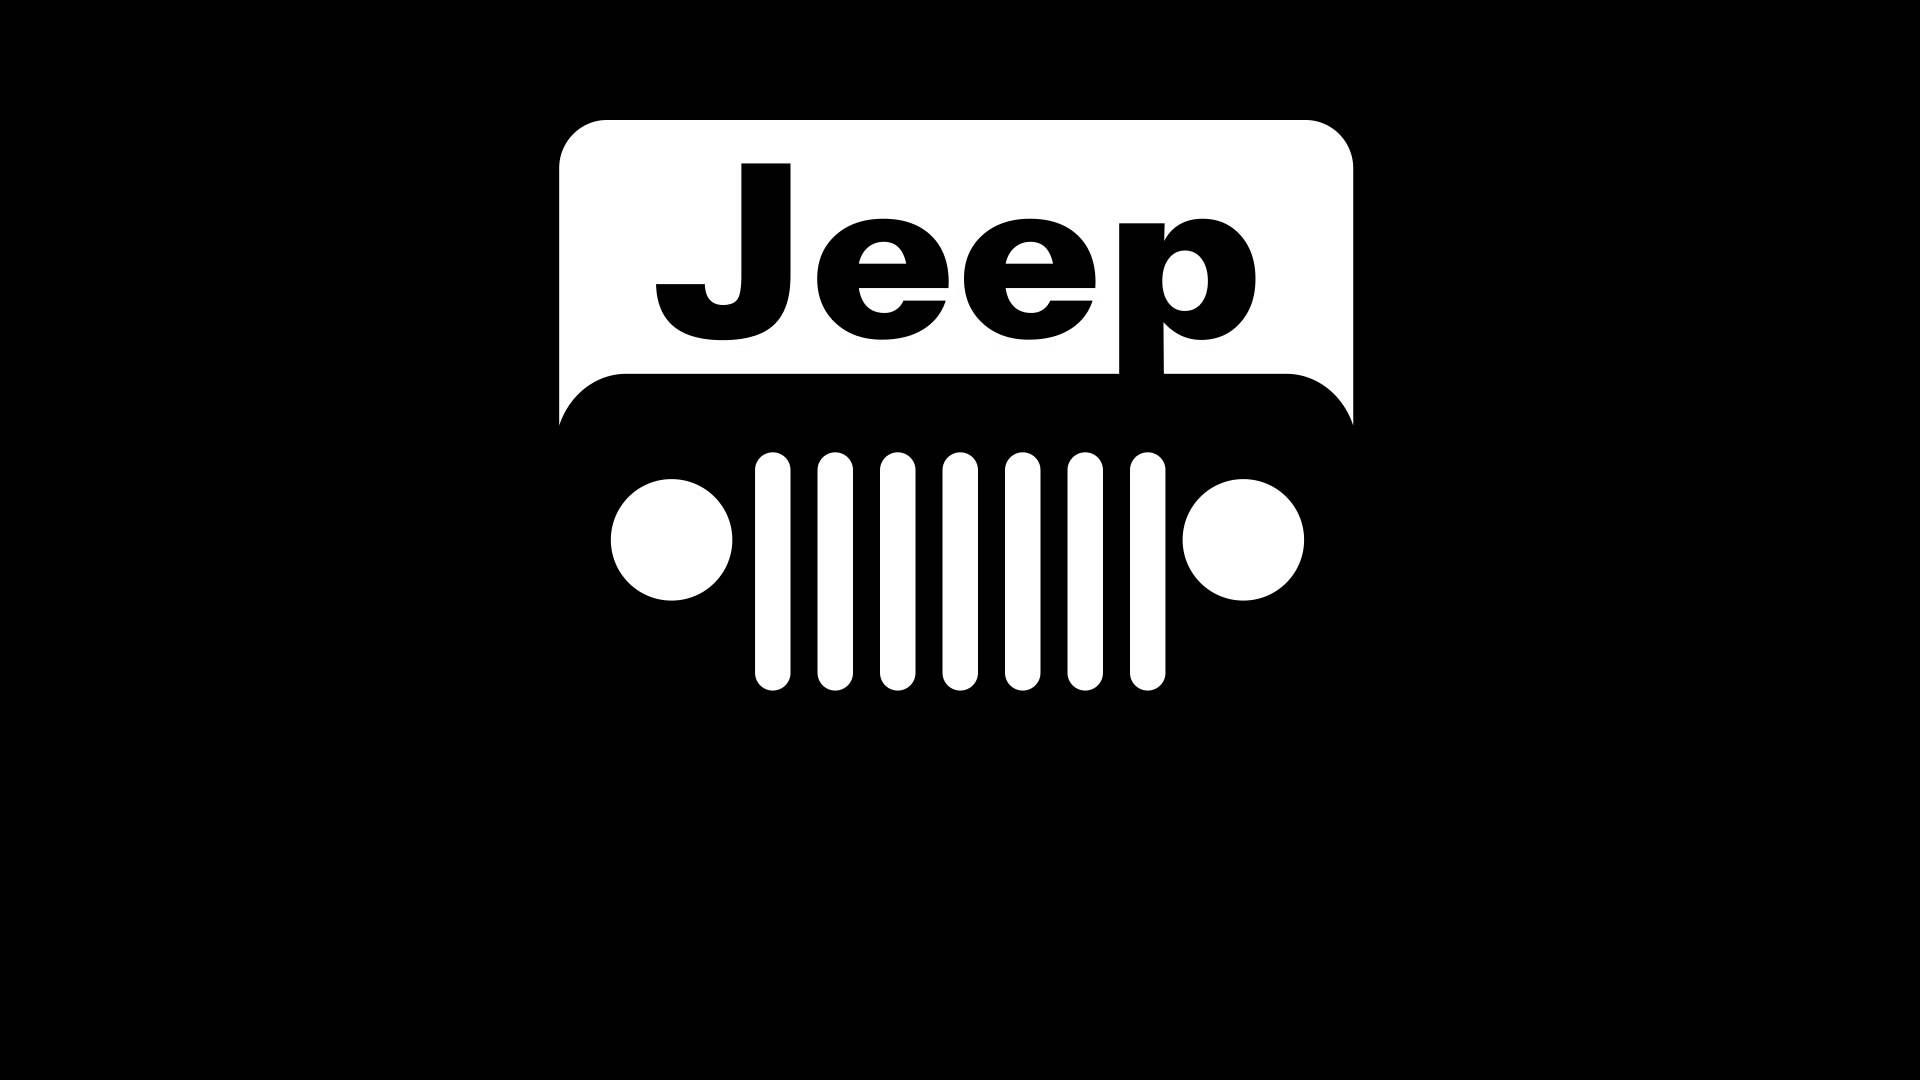 Good Boy Jeep Emblems Jeep Wallpaper Black Jeep